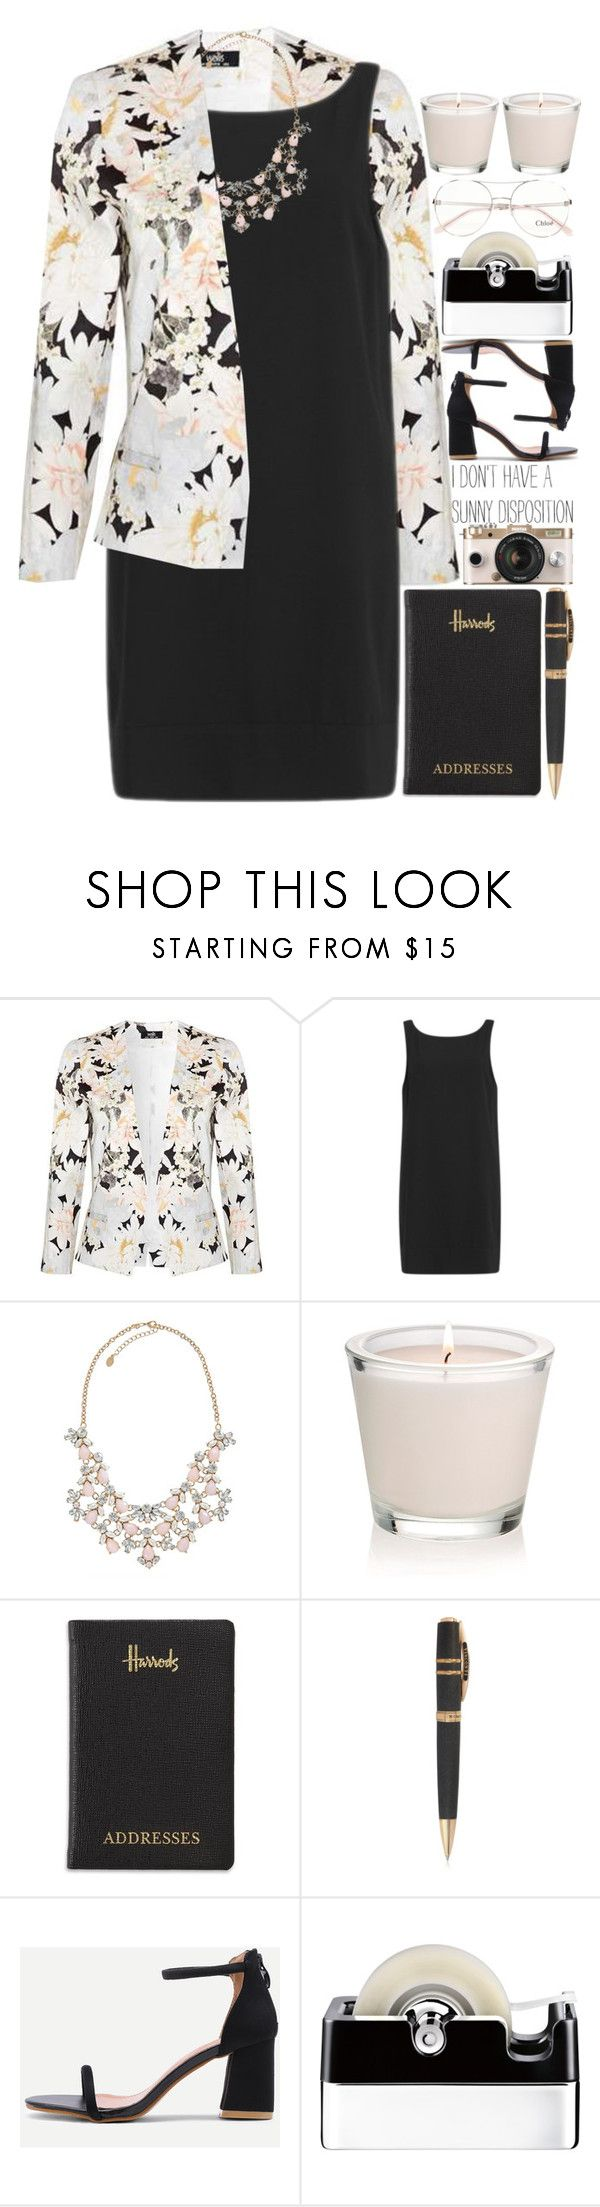 """5600"" by tiffanyelinor ❤ liked on Polyvore featuring Samsøe & Samsøe, Harrods, Visconti, Georg Jensen and Chloé"